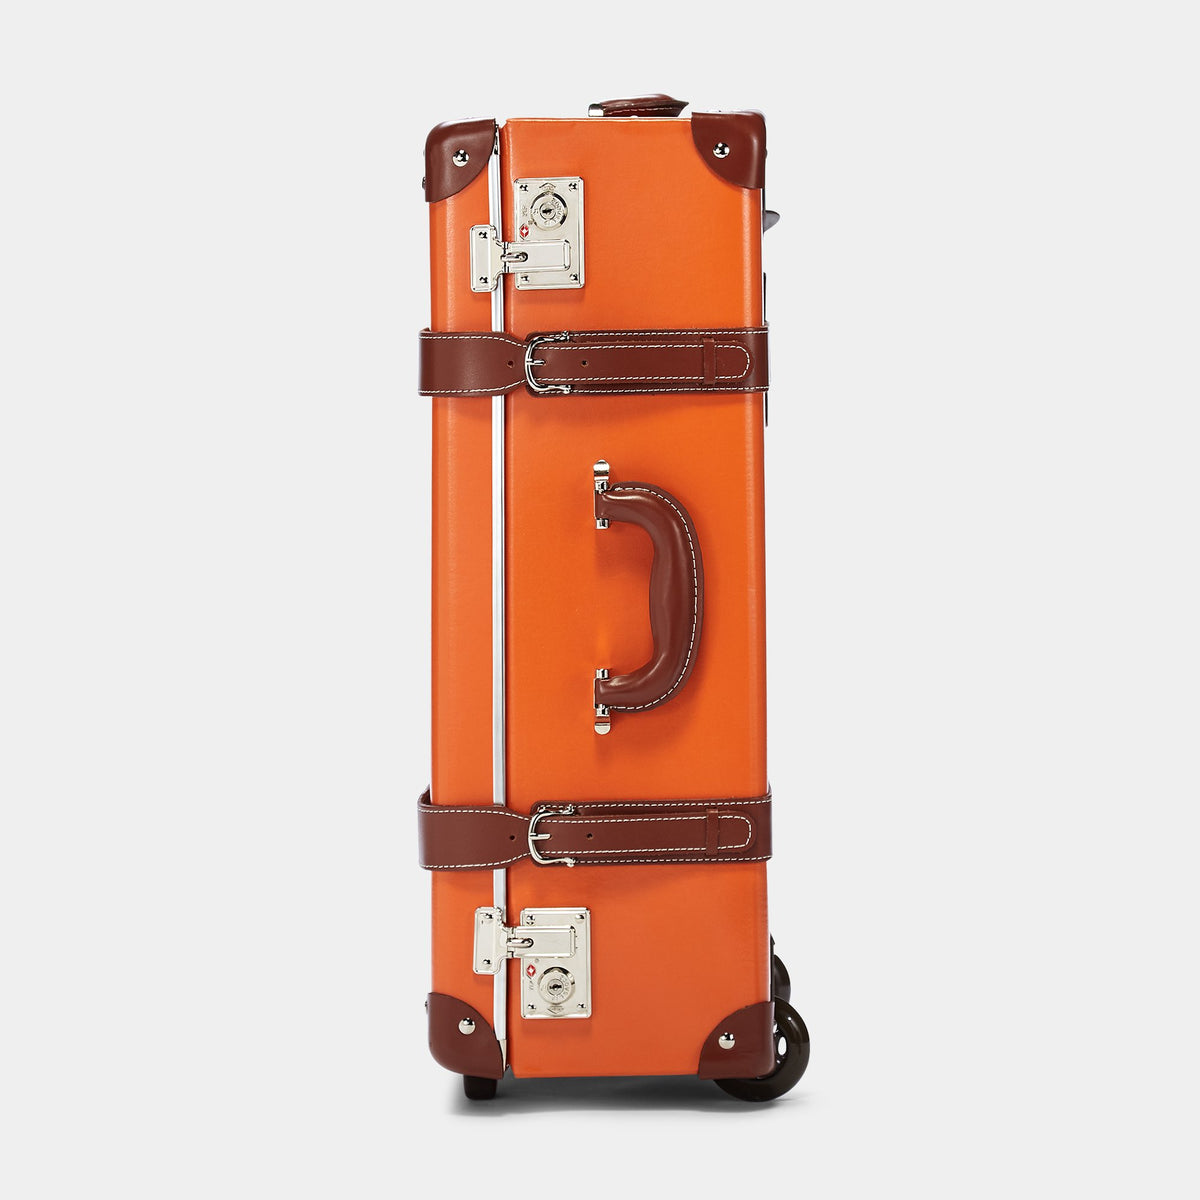 The Anthropologist Stowaway in Orange - Vintage Style Leather Case - Exterior Side